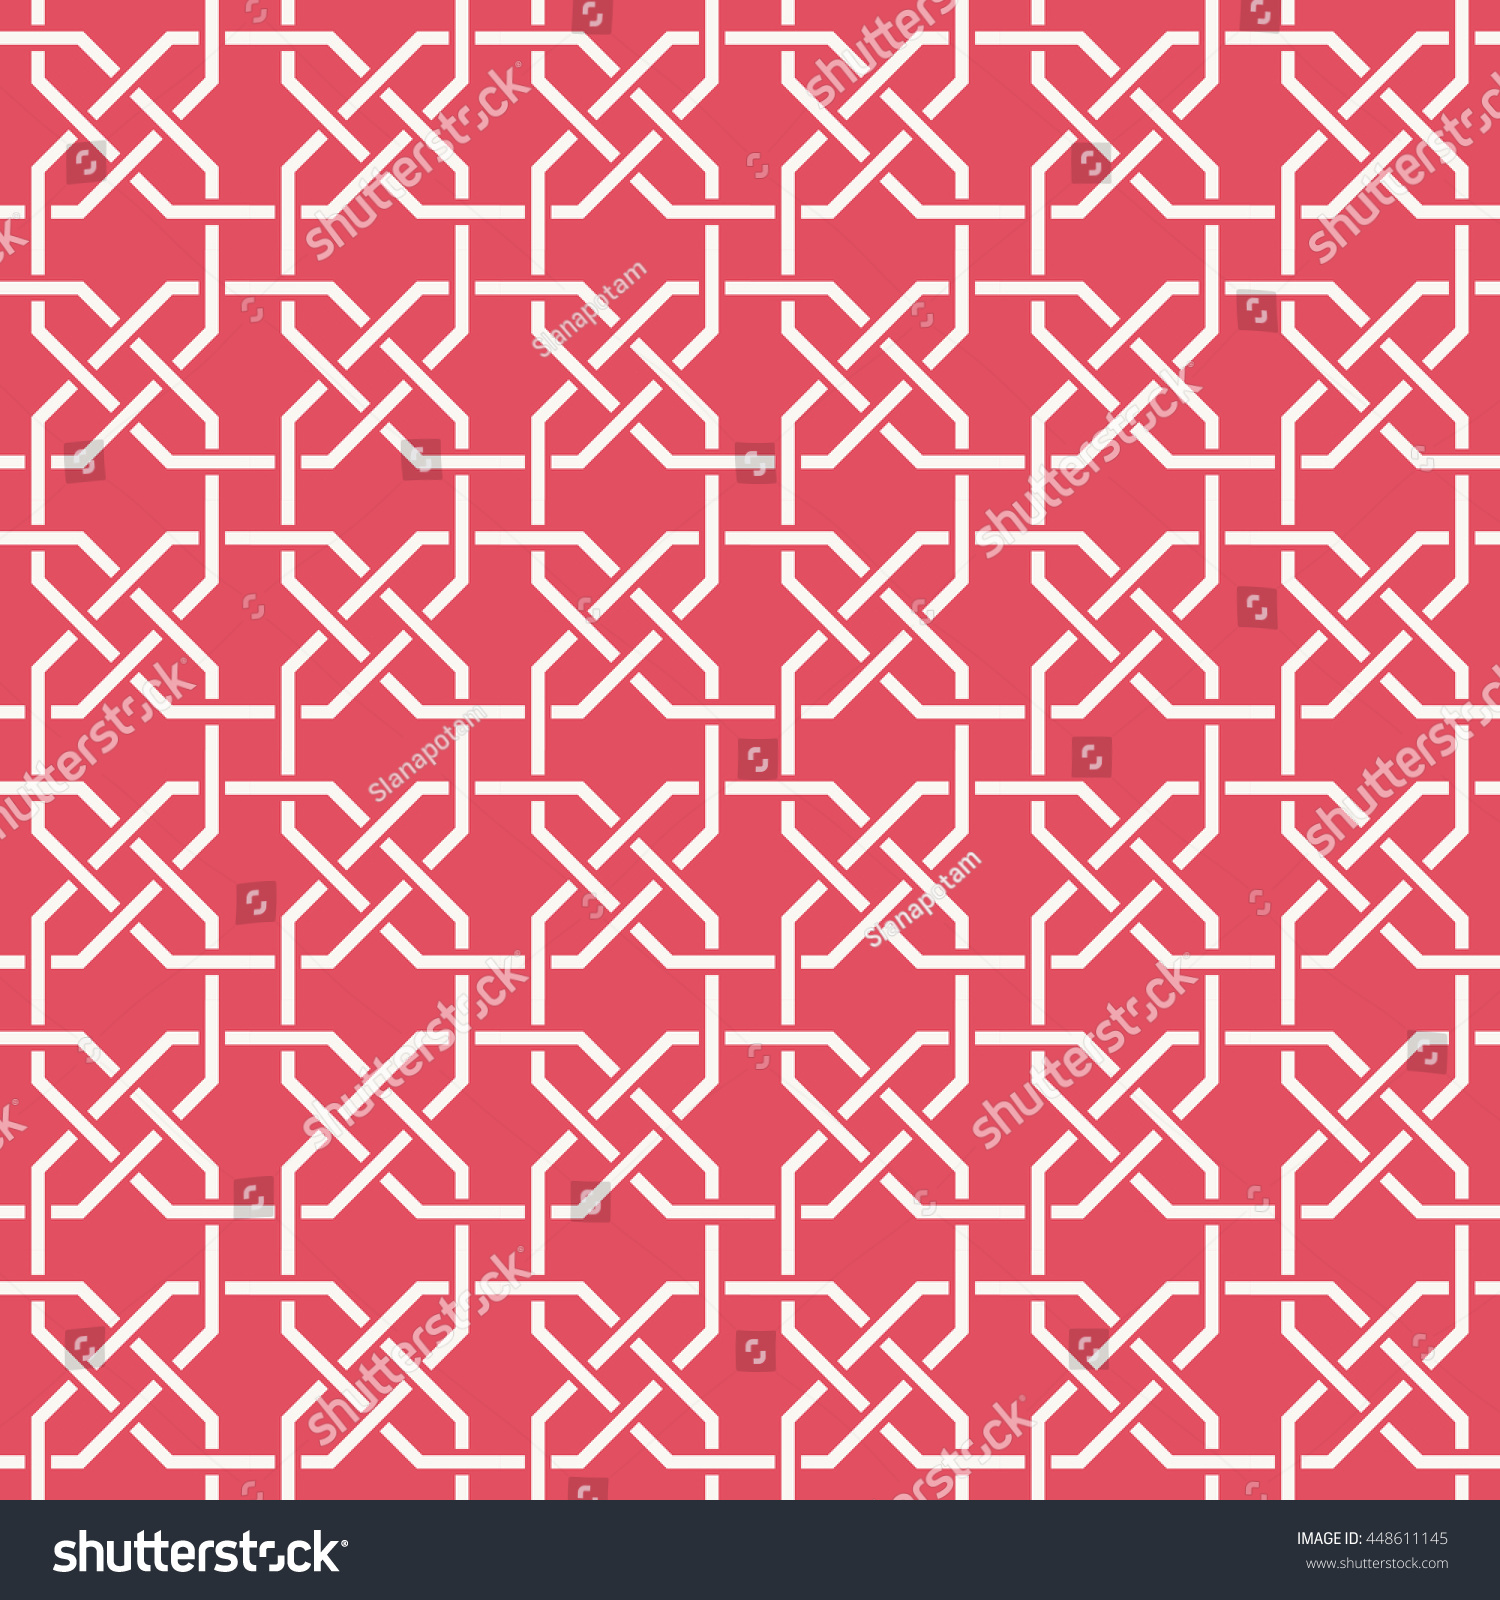 Entwined Modern Pattern Based On Traditional Stock Vector ... for Modern Arabic Pattern Vector  585hul